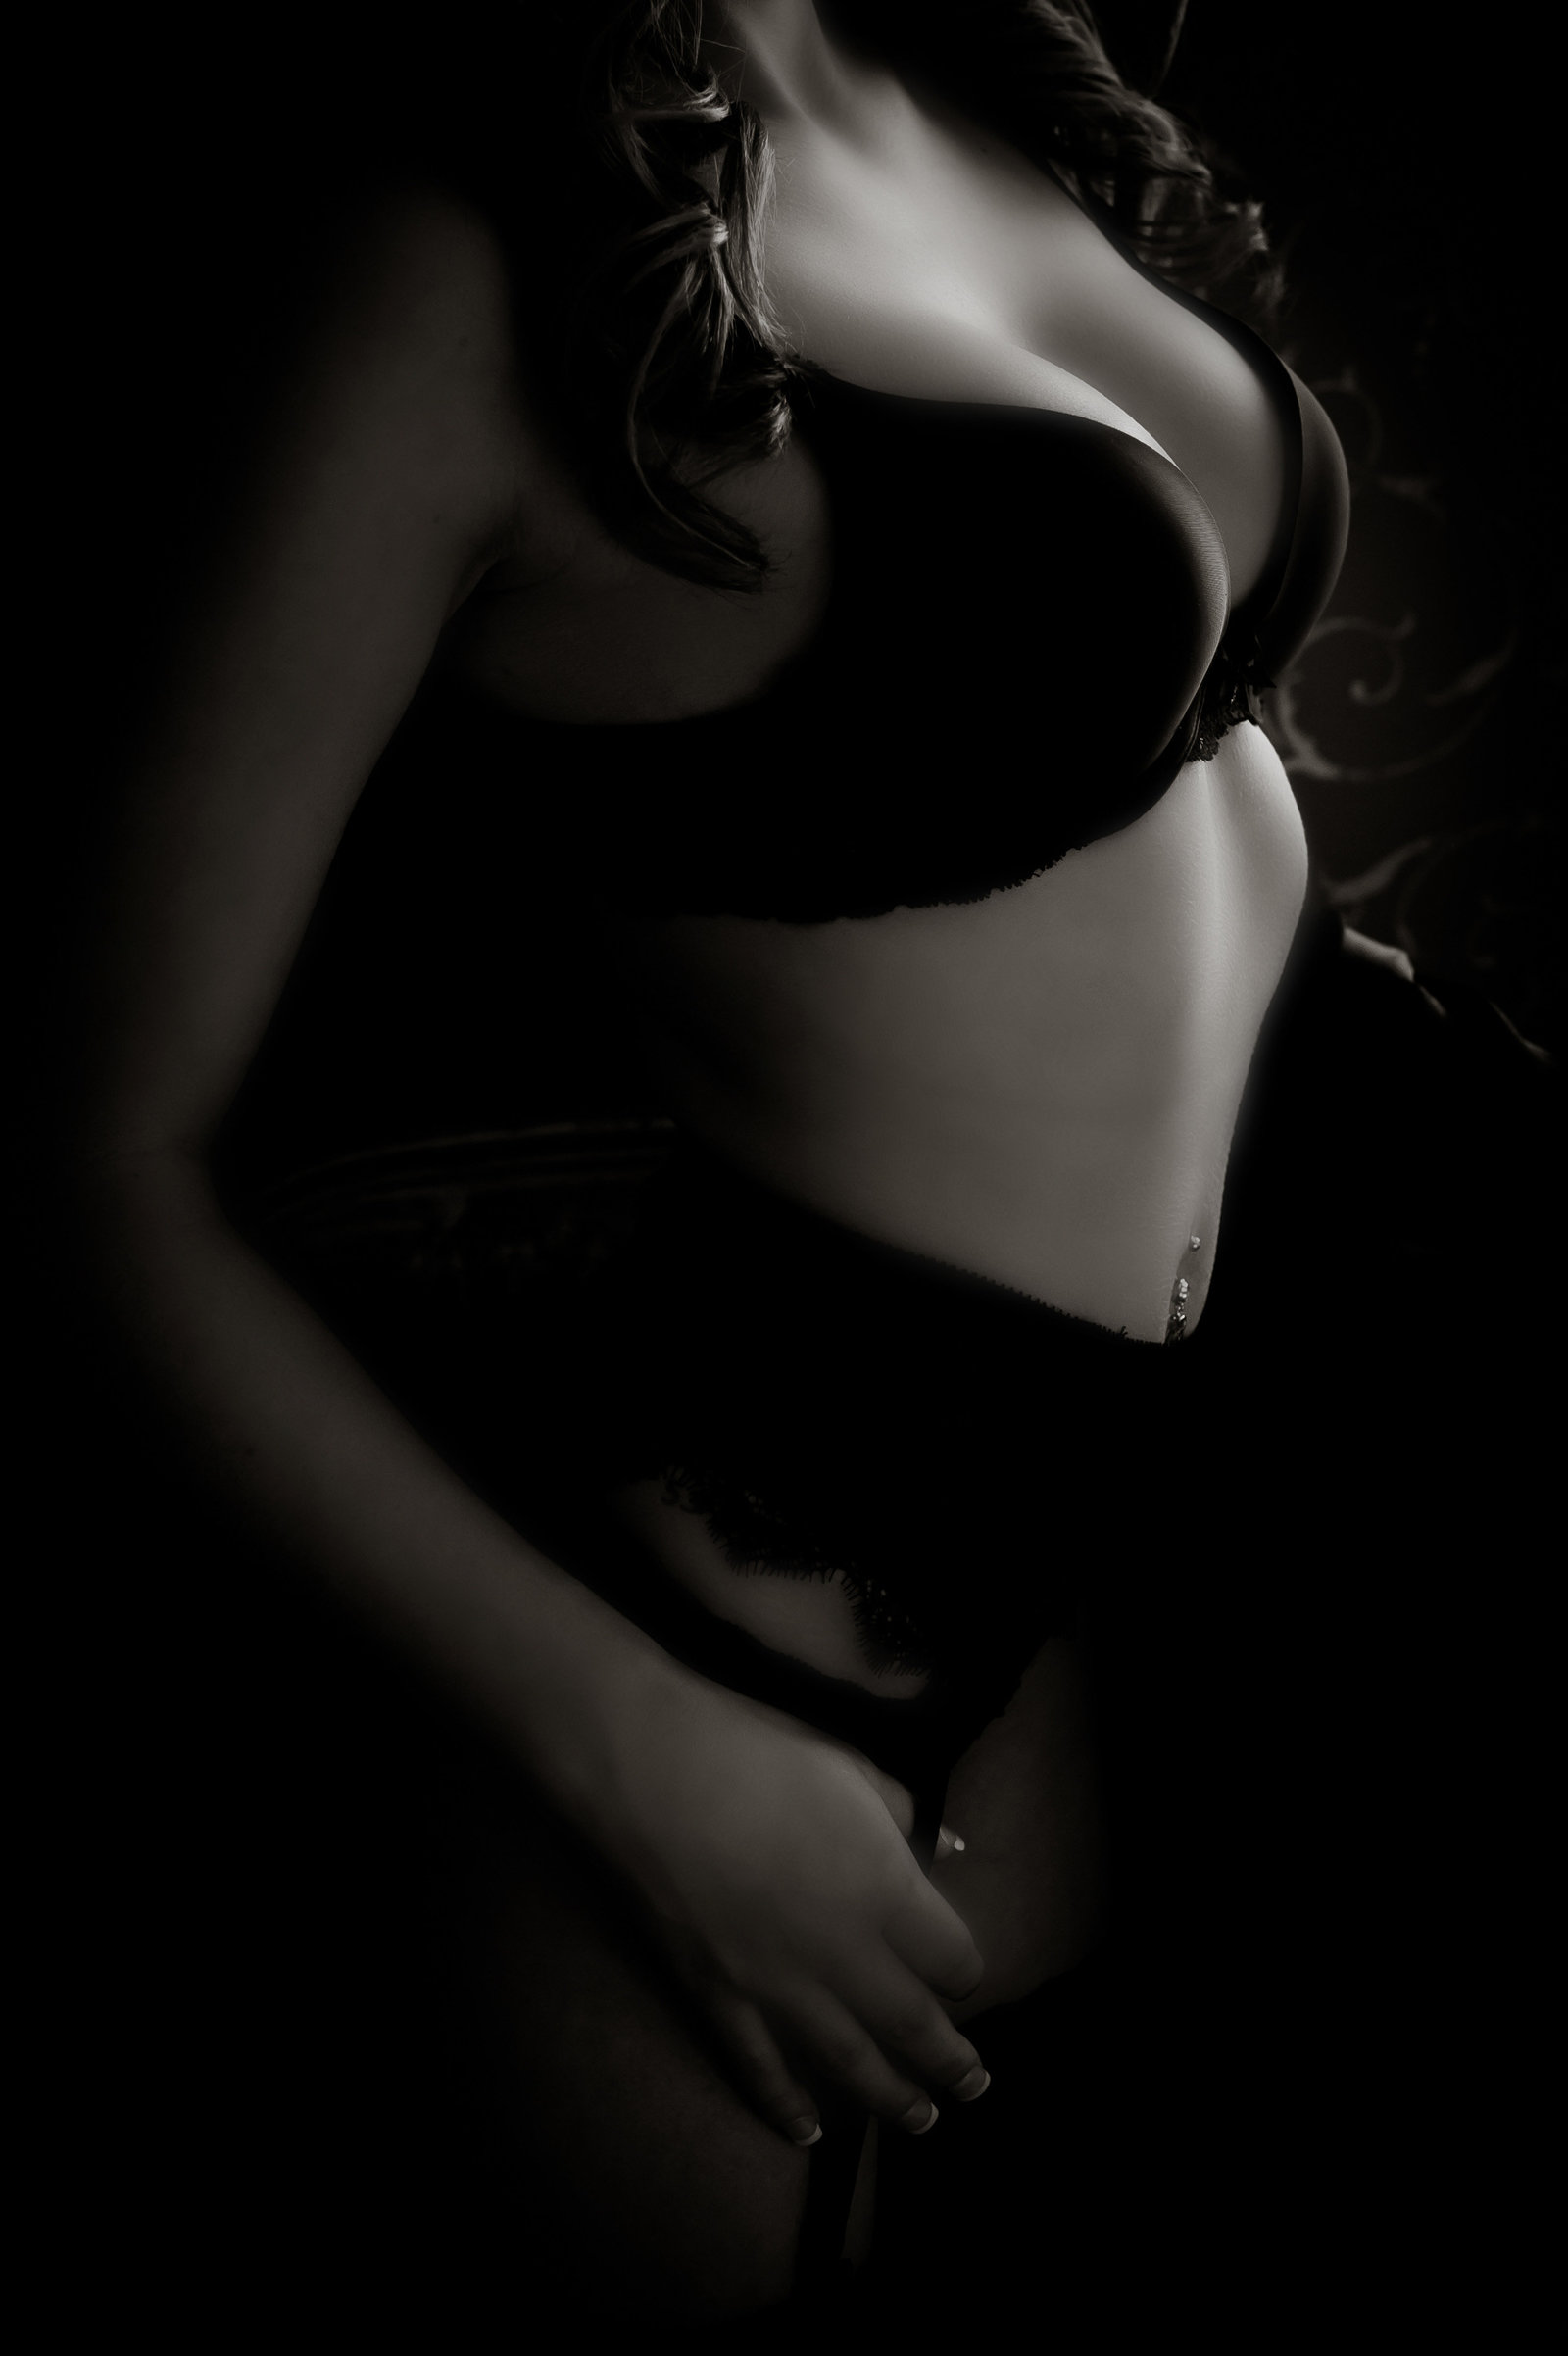 minneapolis-boudoir-photography-214